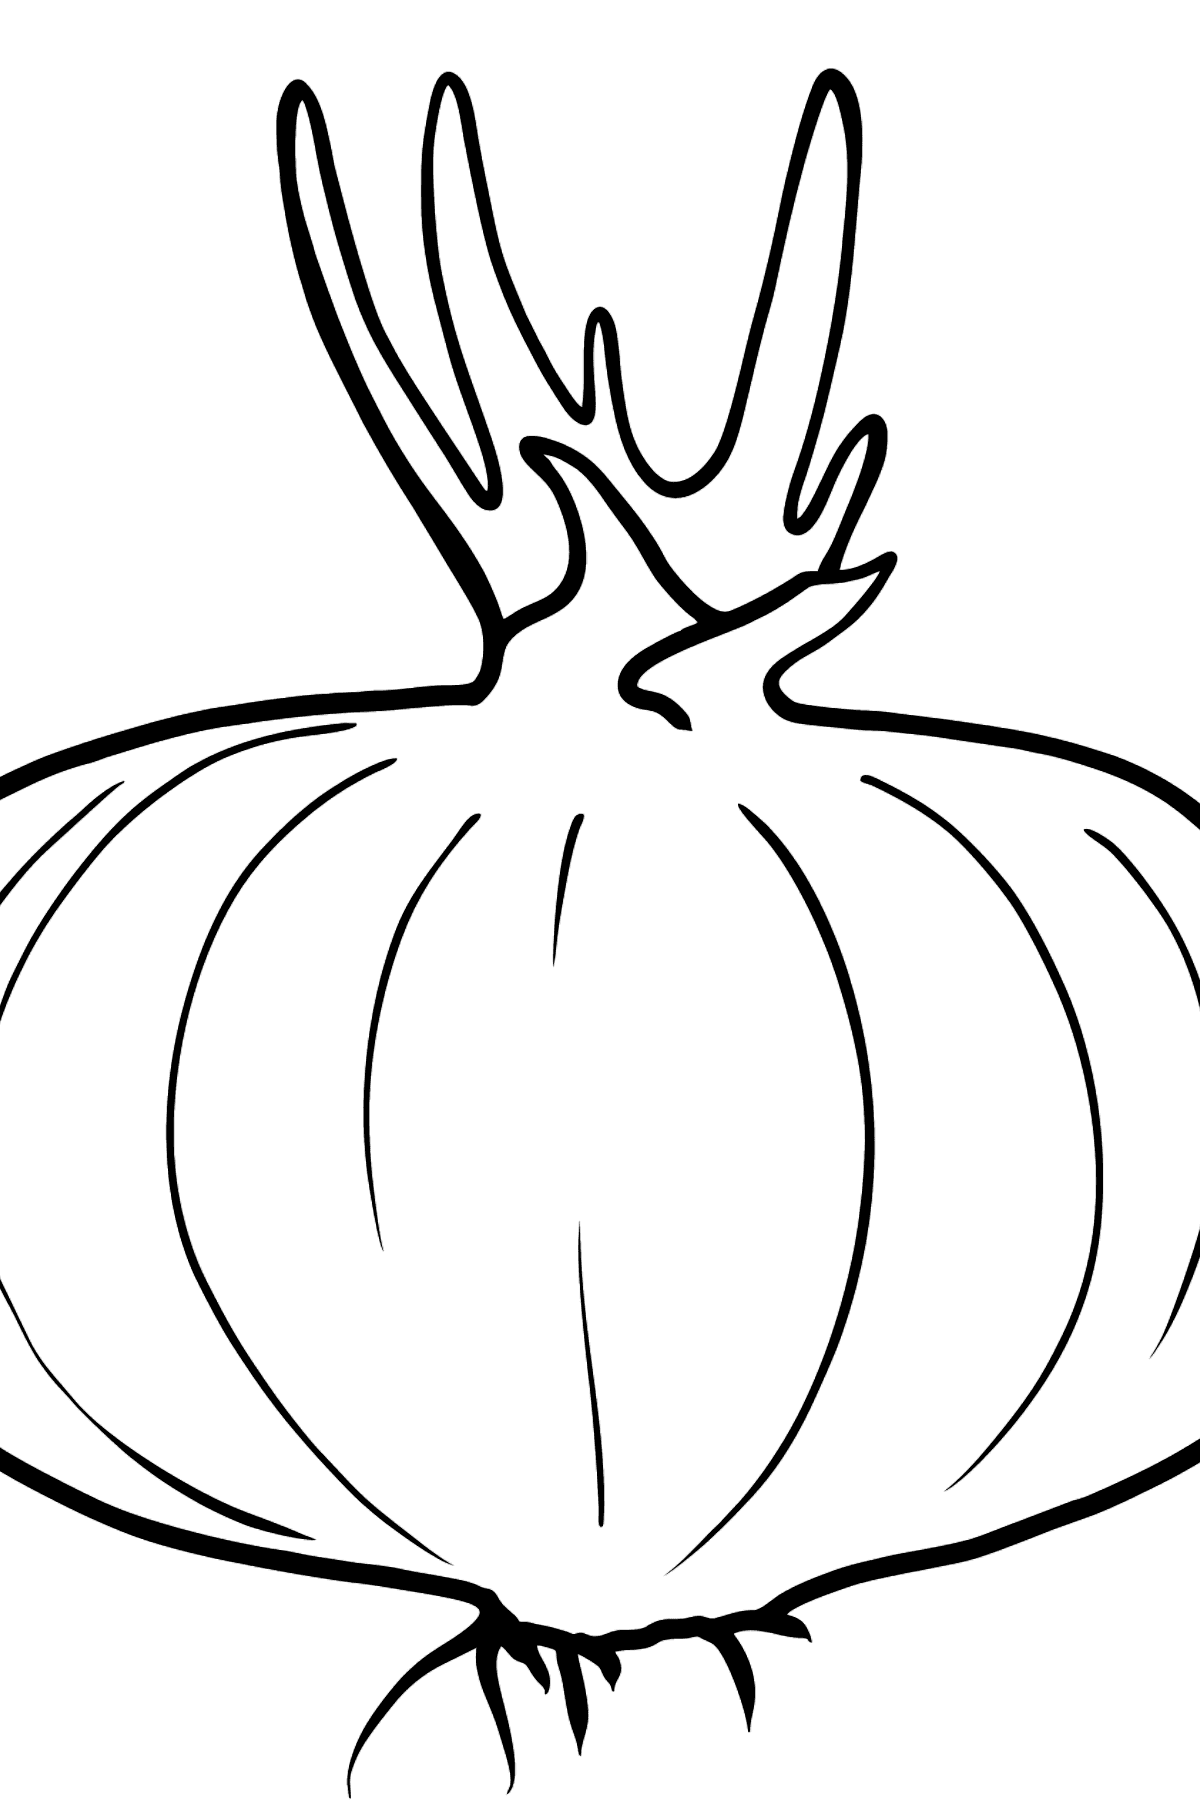 Red Onion coloring page - Coloring Pages for Kids